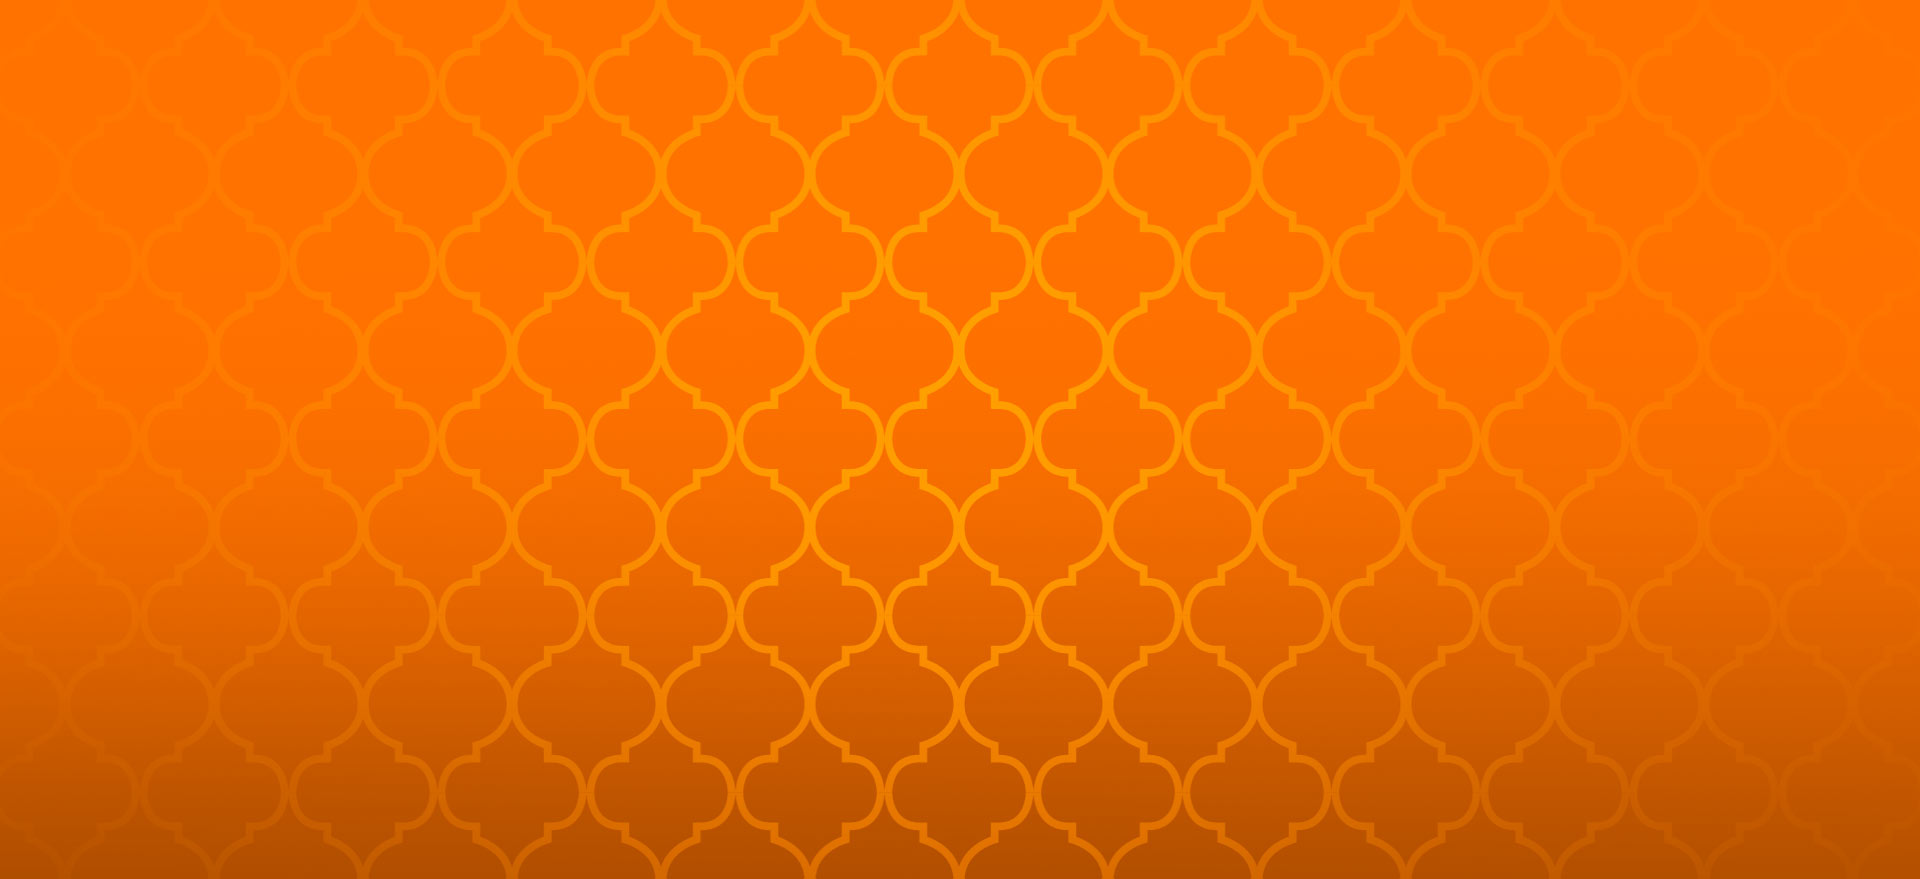 zula background pattern